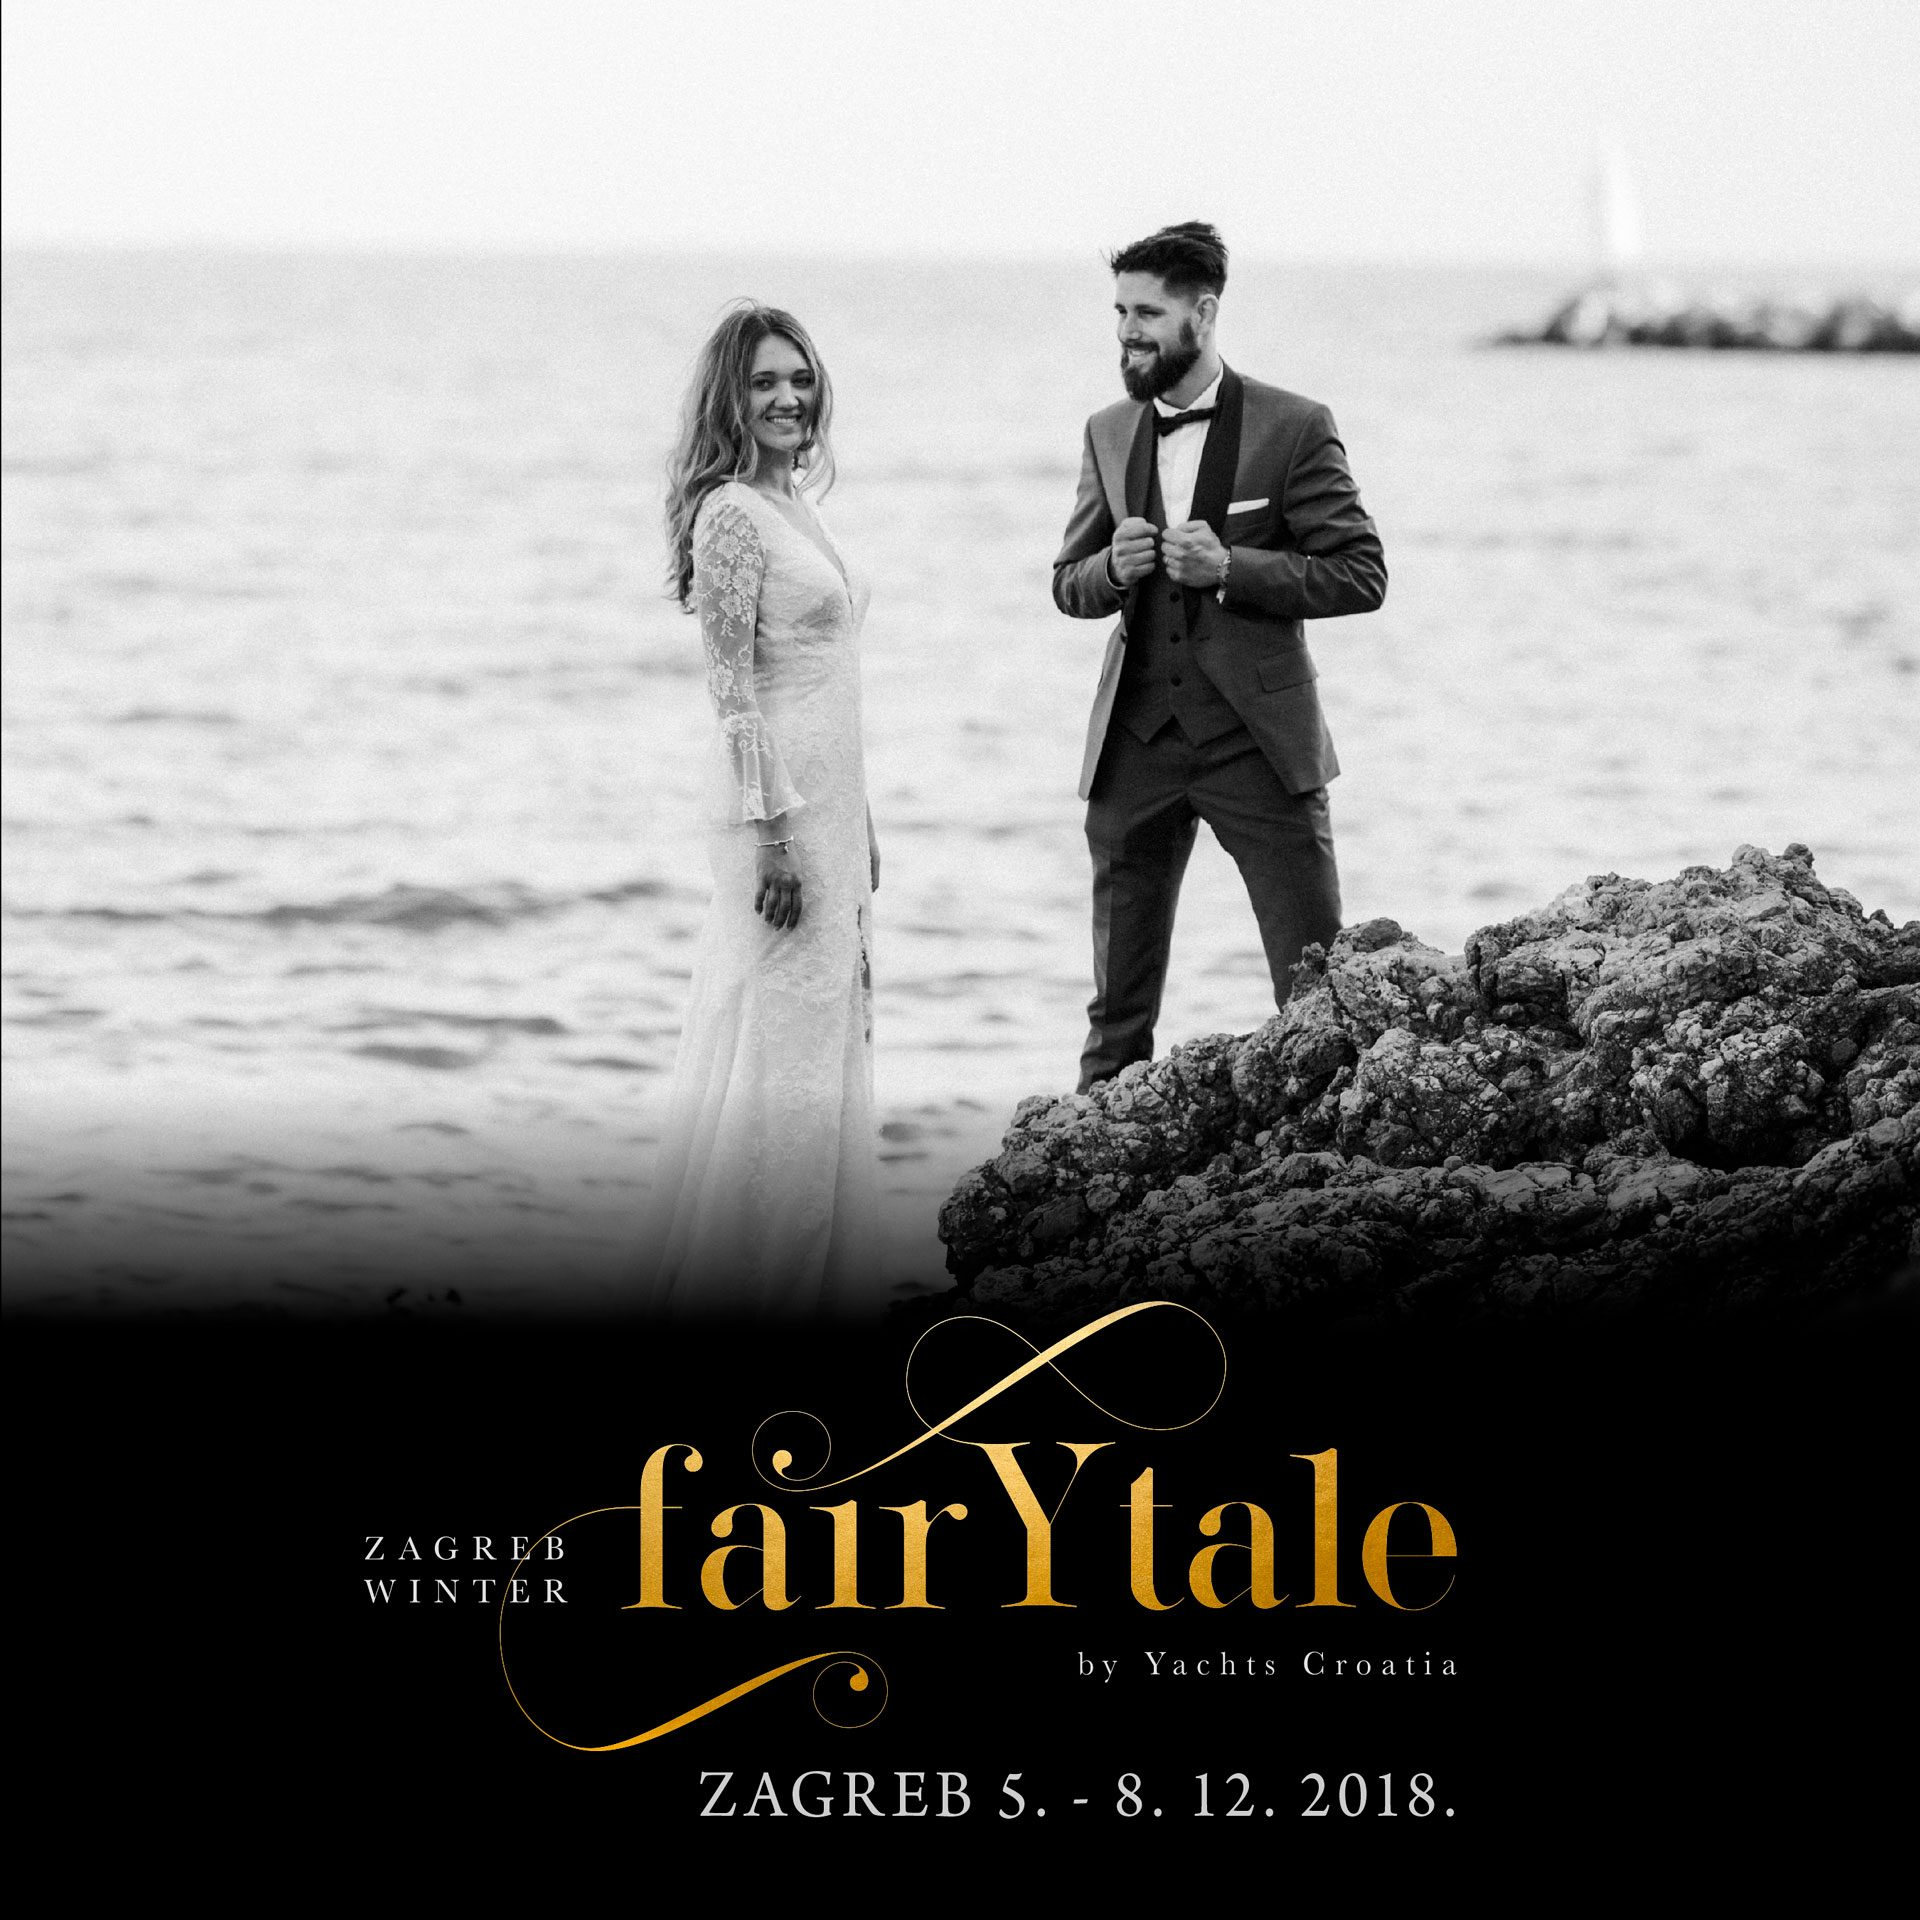 I Do Weddings, Moda - Zagreb Winter Fairytale